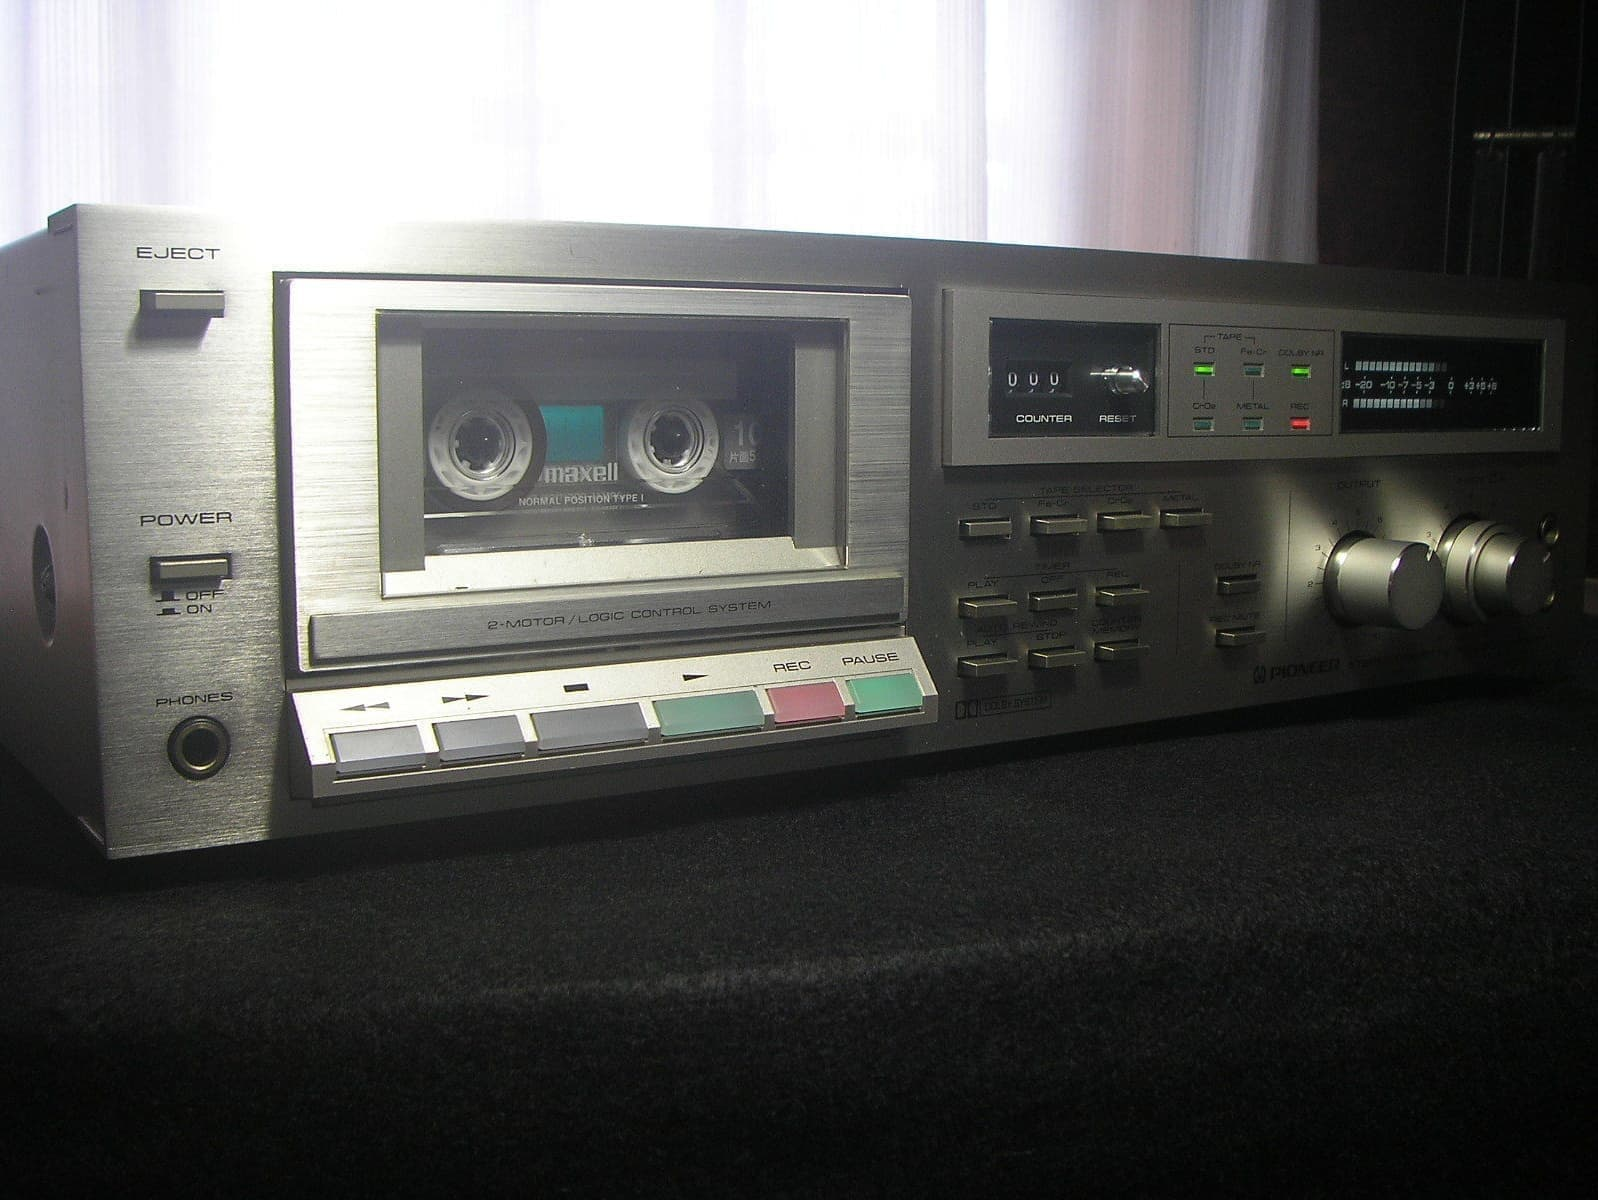 PIONEER CT-520 カセットデッキ ラジカセ修理 アトリエ4R